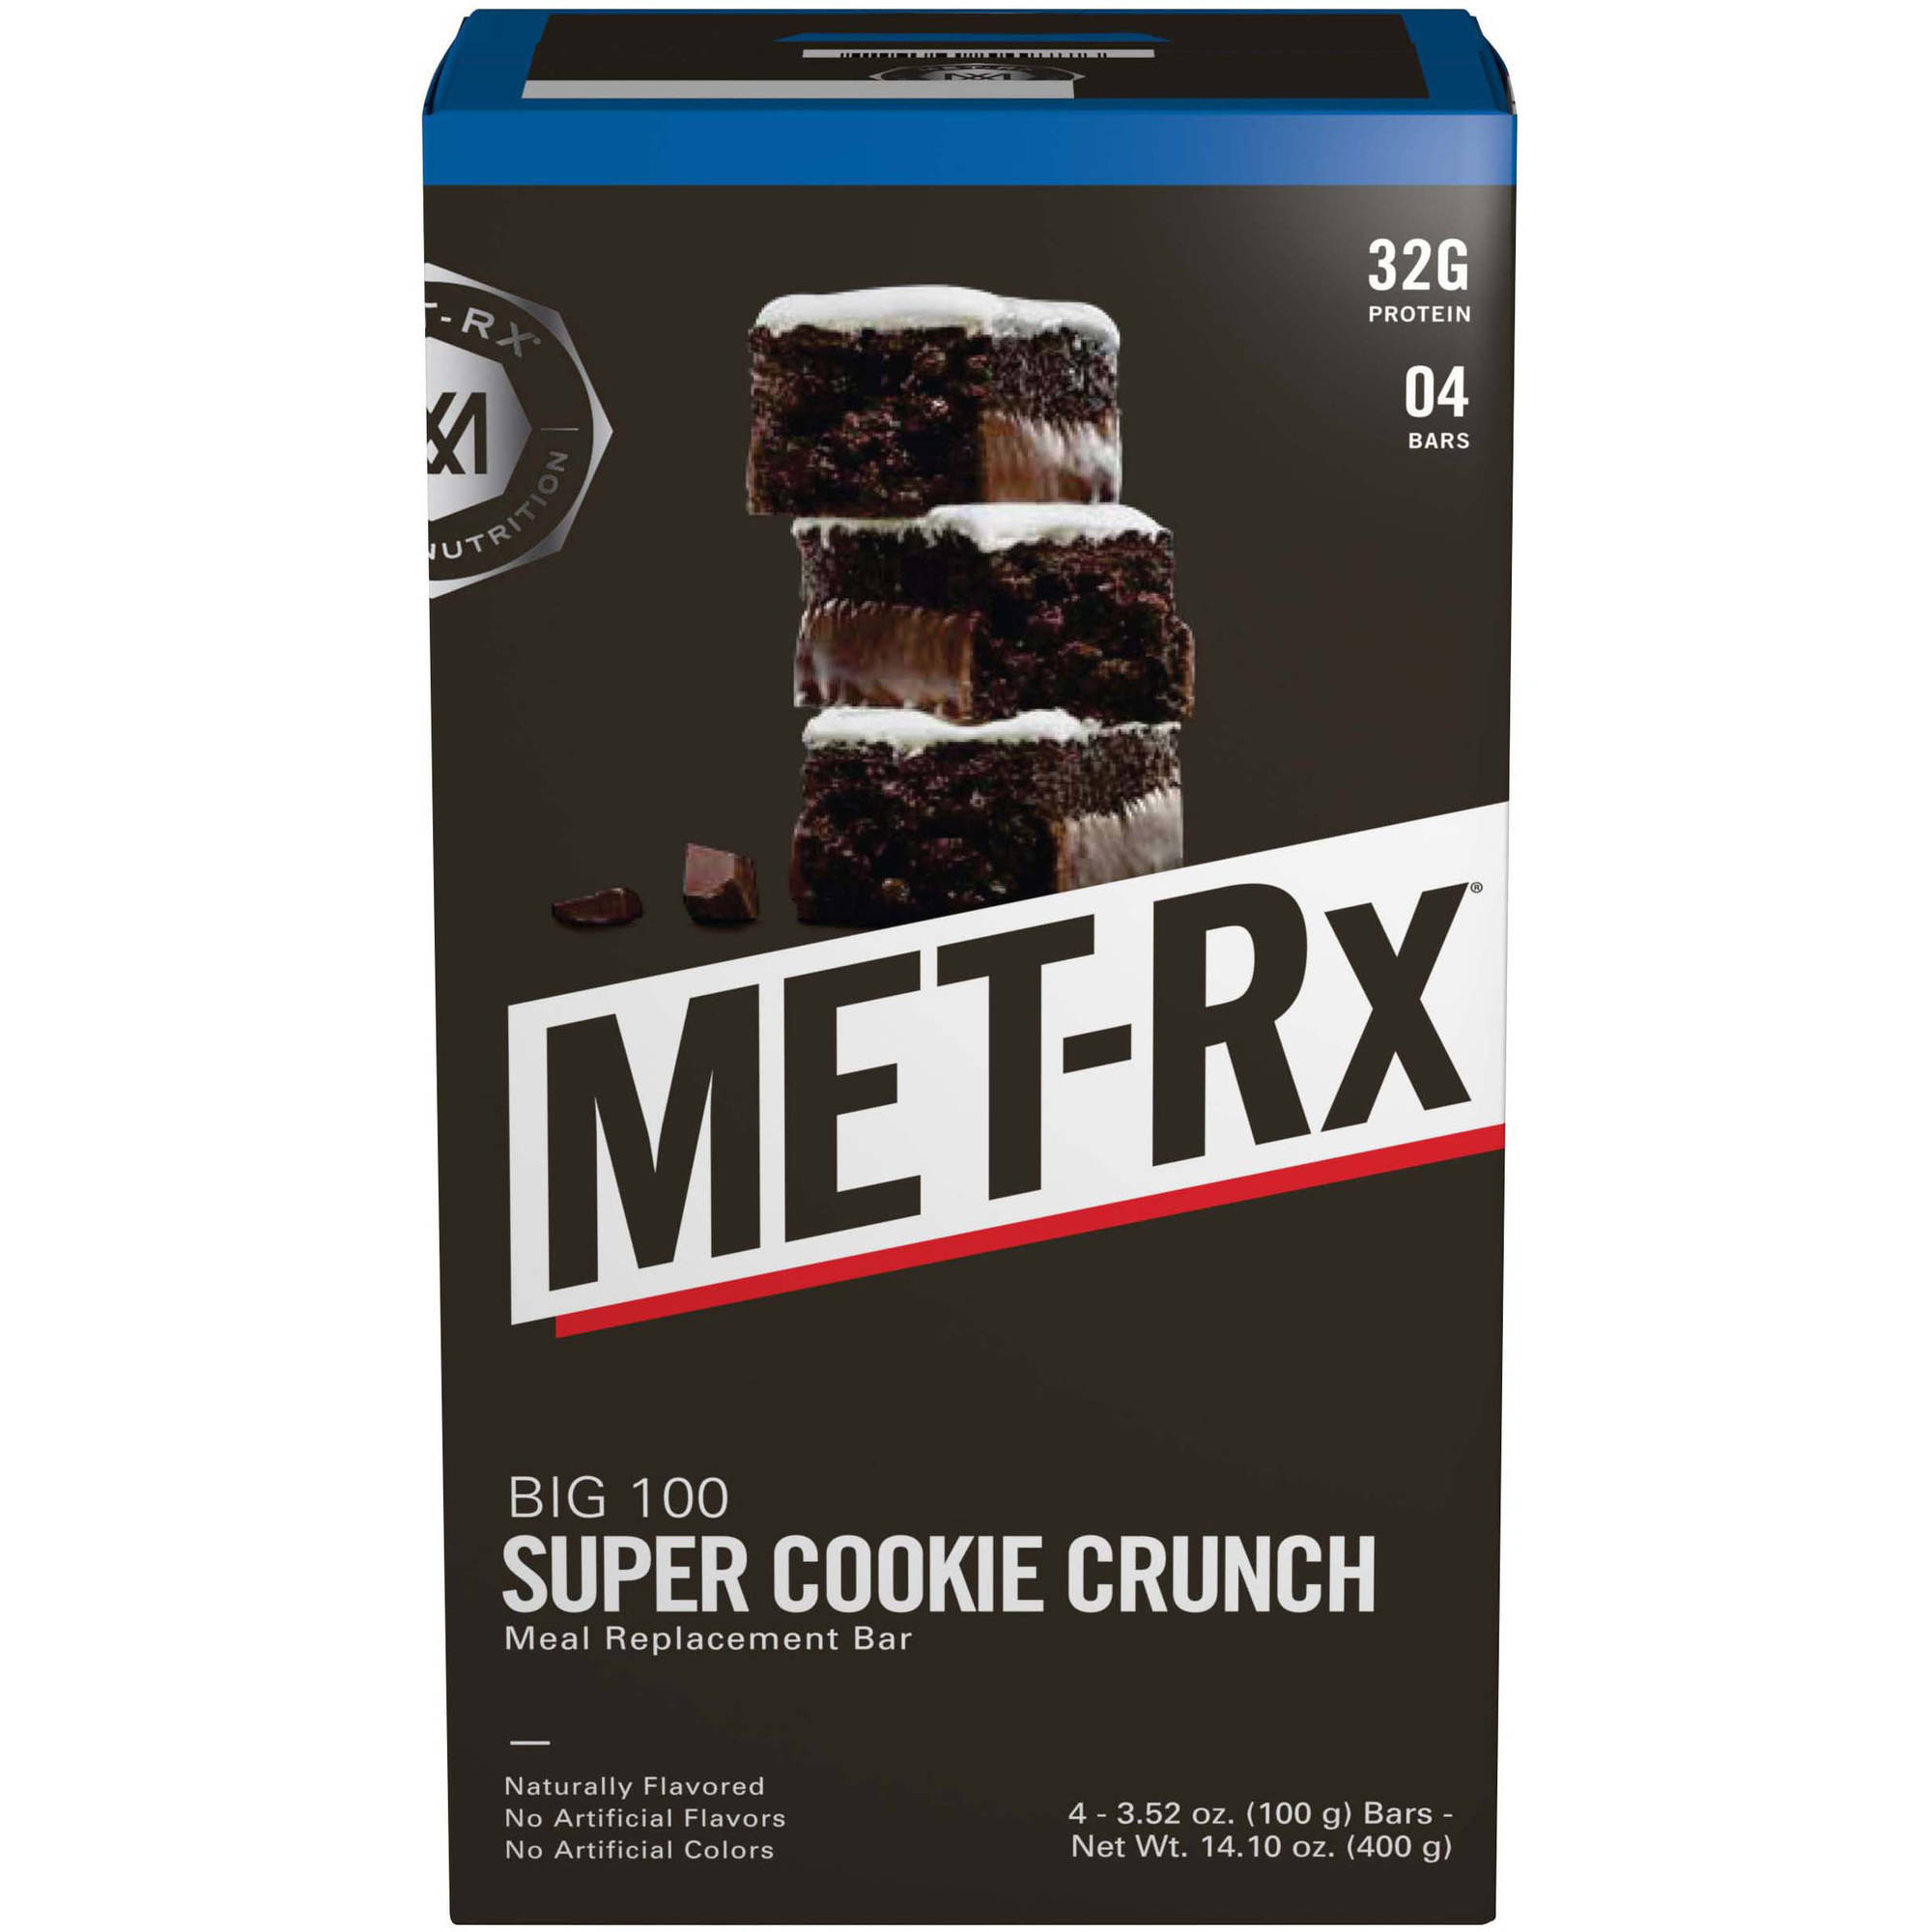 MET-Rx Big 100 Protein Bar, Super Cookie Crunch, 32g Protein, 4 Ct